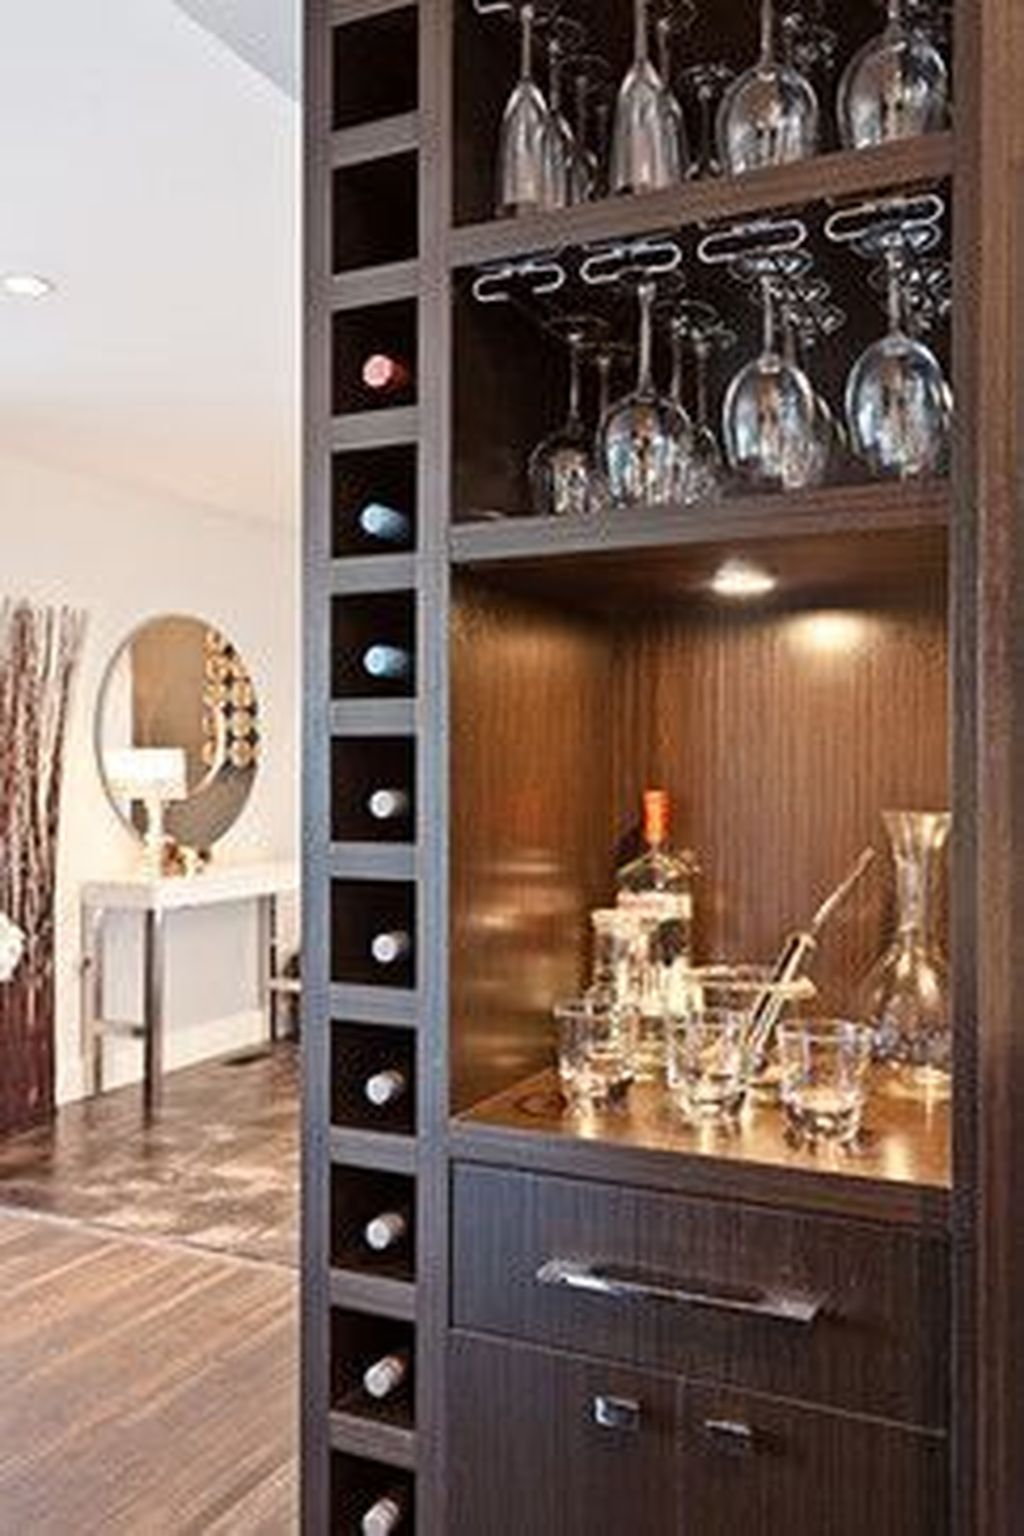 30 Elegant Mini Bar Design Ideas That You Can Try On Home Coodecor Modern Home Bar Bars For Home Home Bar Counter